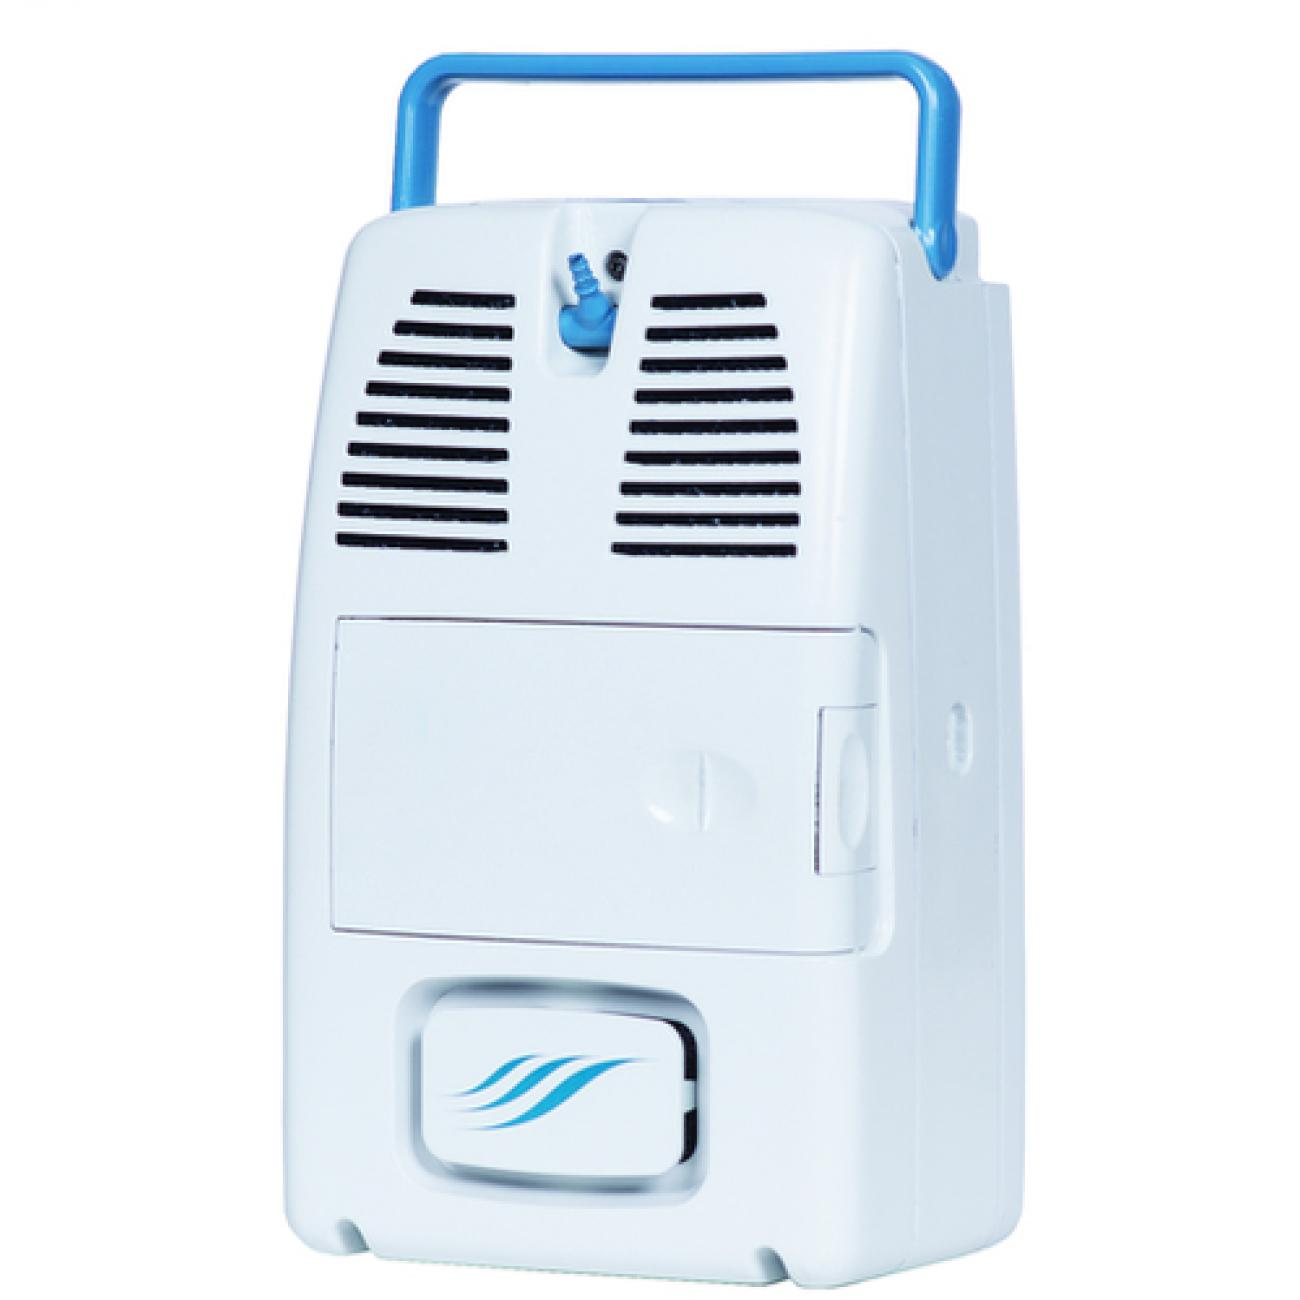 Portable Oxygen Concentrator, Power Consumption : 240 Watt